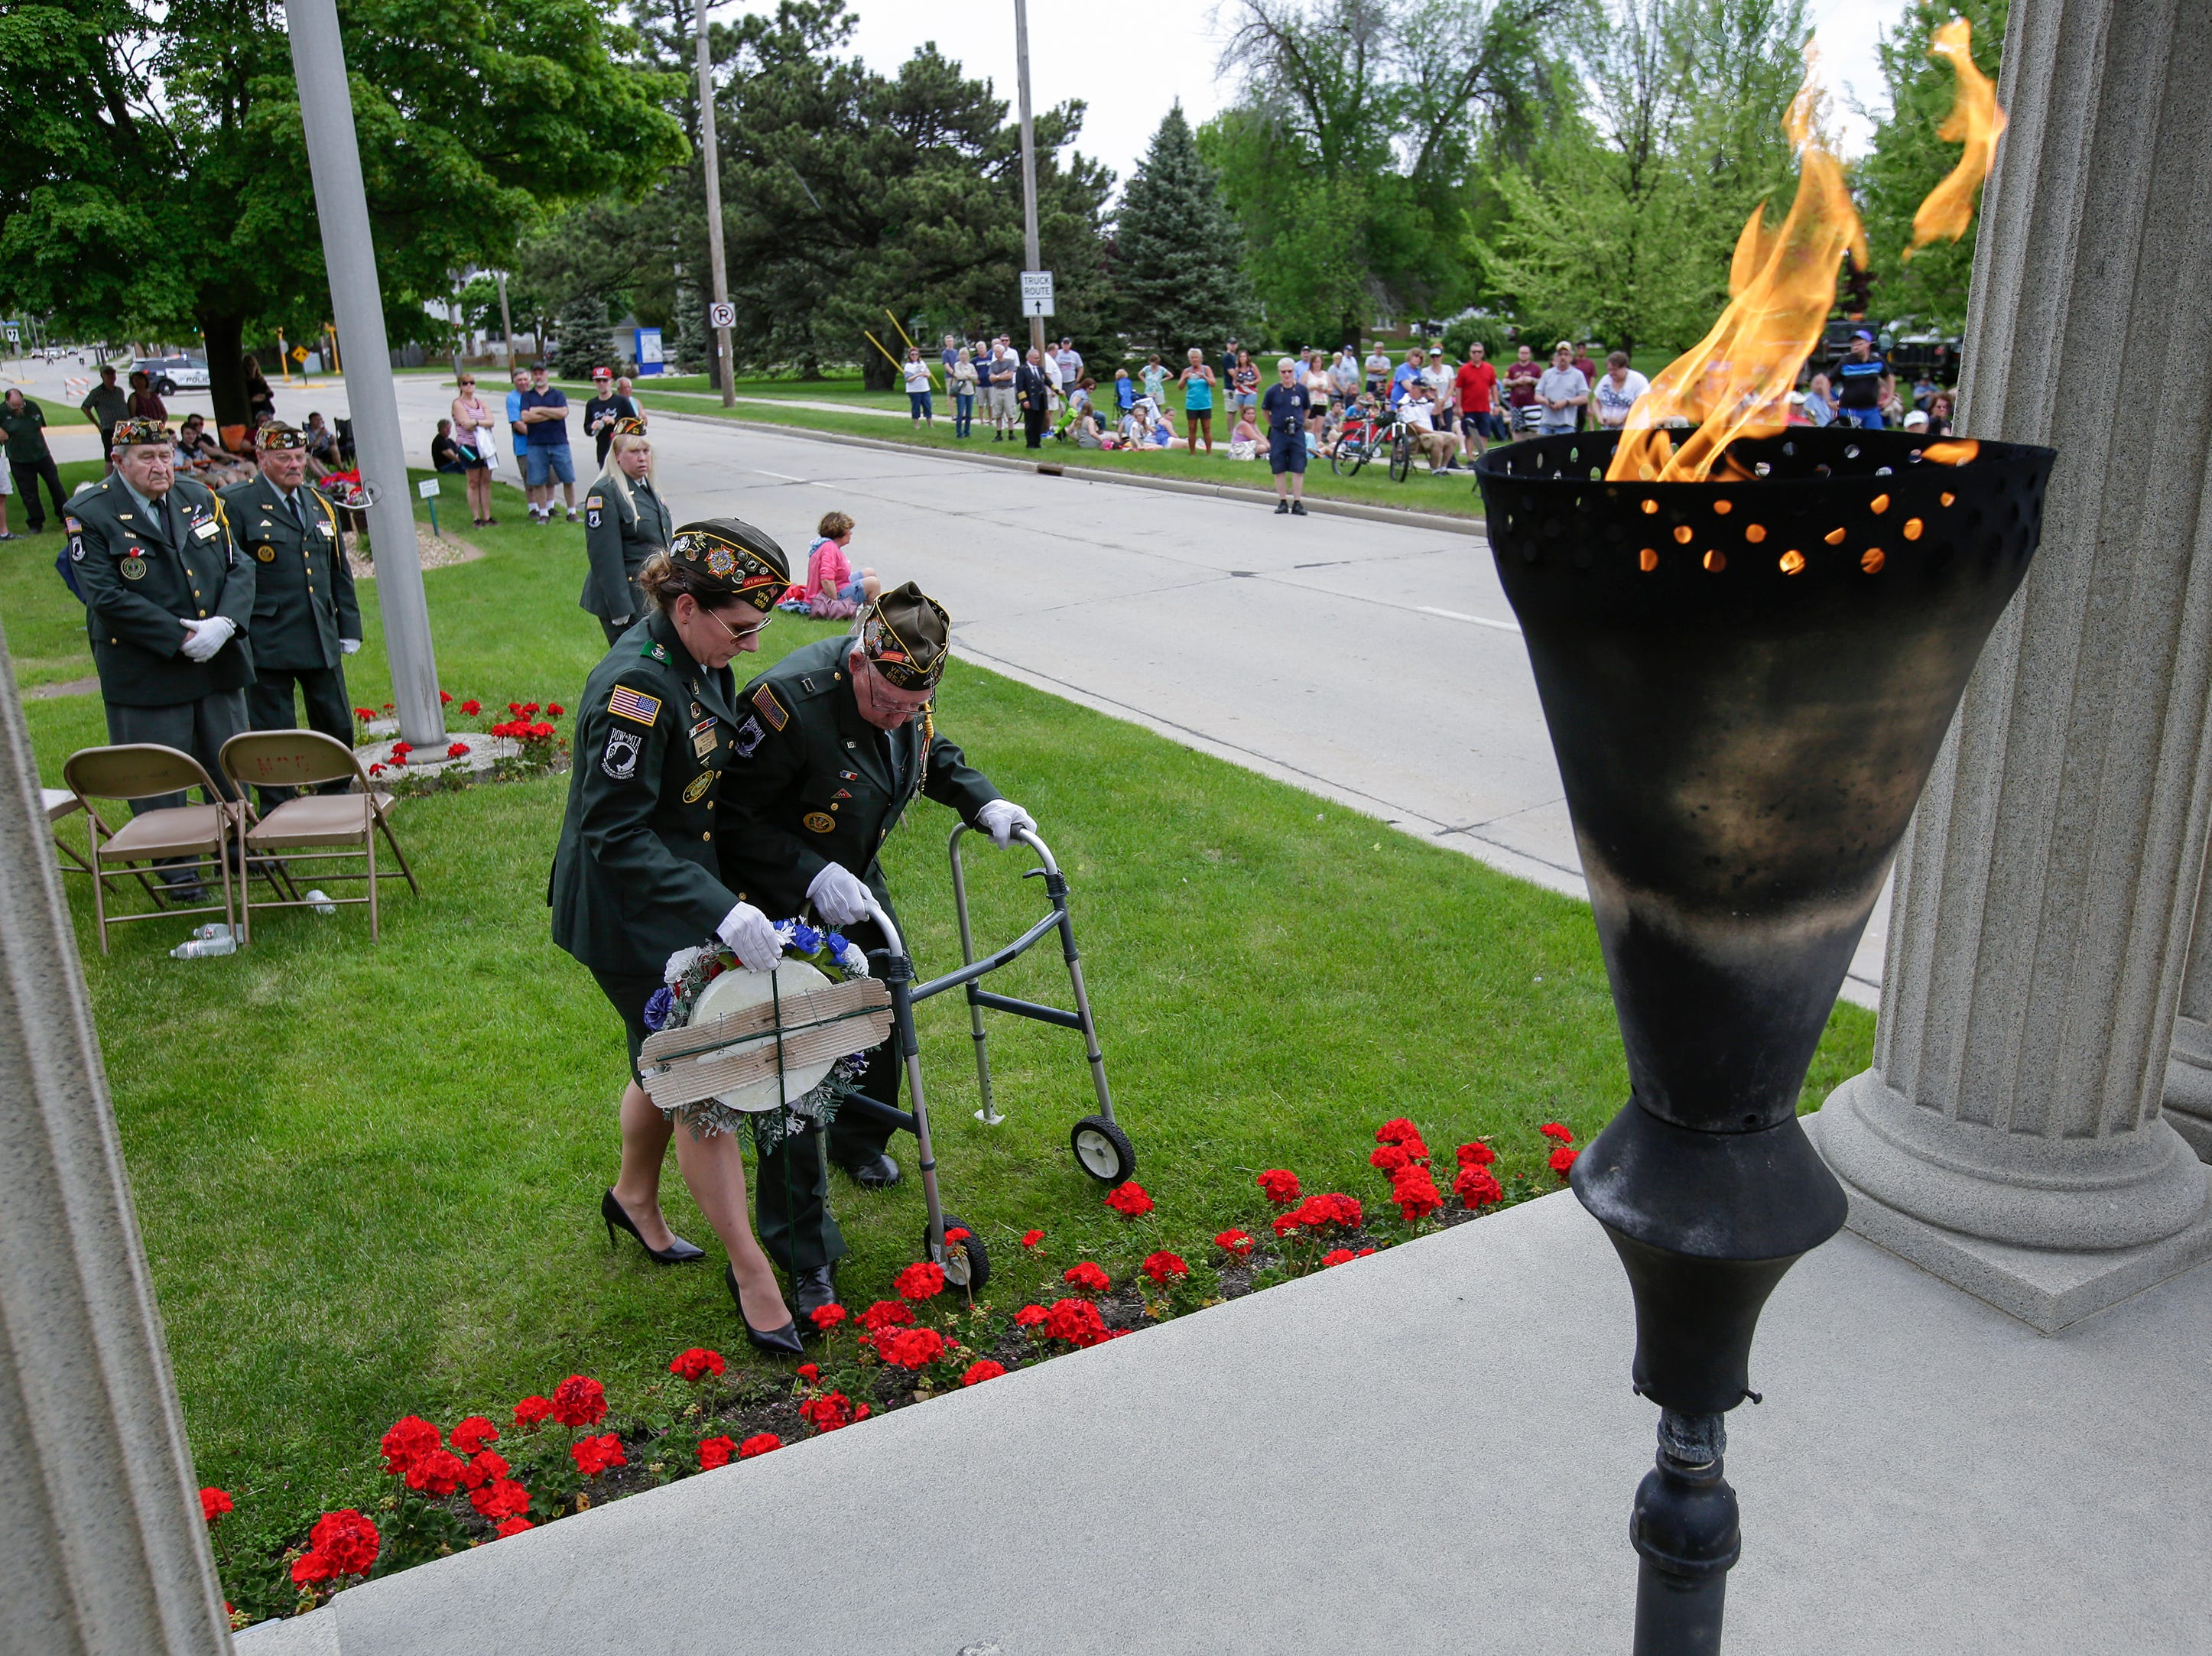 VFW honor guard Julie Rozum, left, and color guard captain Harold Kummer place a commemorative wreath in front of the Soldiers and Sailors Monument as the Eternal Flame burns in remembrance of those who served during the Memorial Day ceremony Monday, May 28, 2018, in Manitowoc, Wis. Josh Clark/USA TODAY NETWORK-Wisconsin